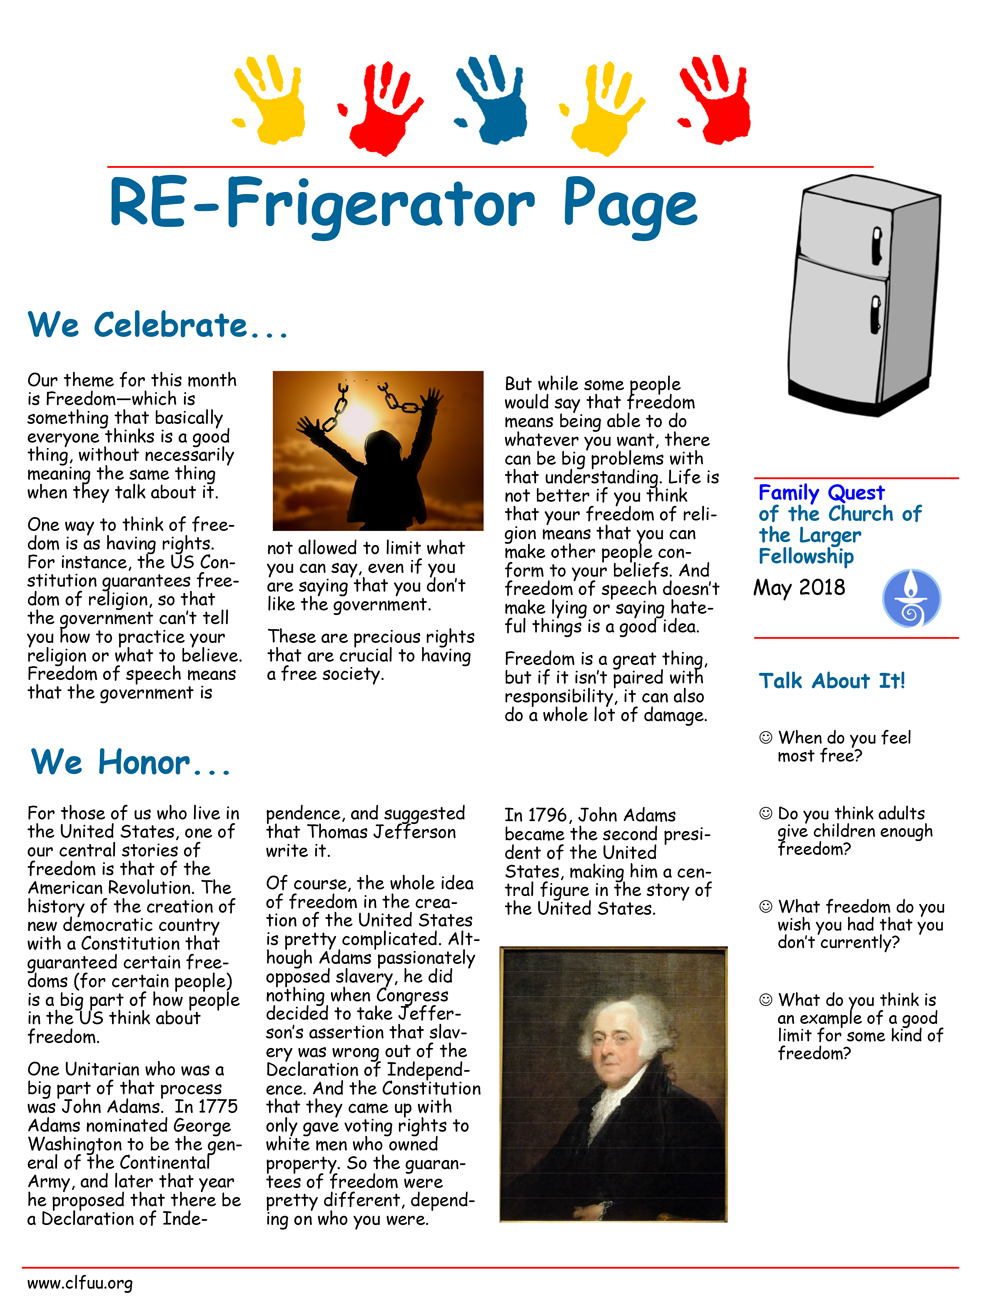 FreedomREFrigeratorPage-1.png